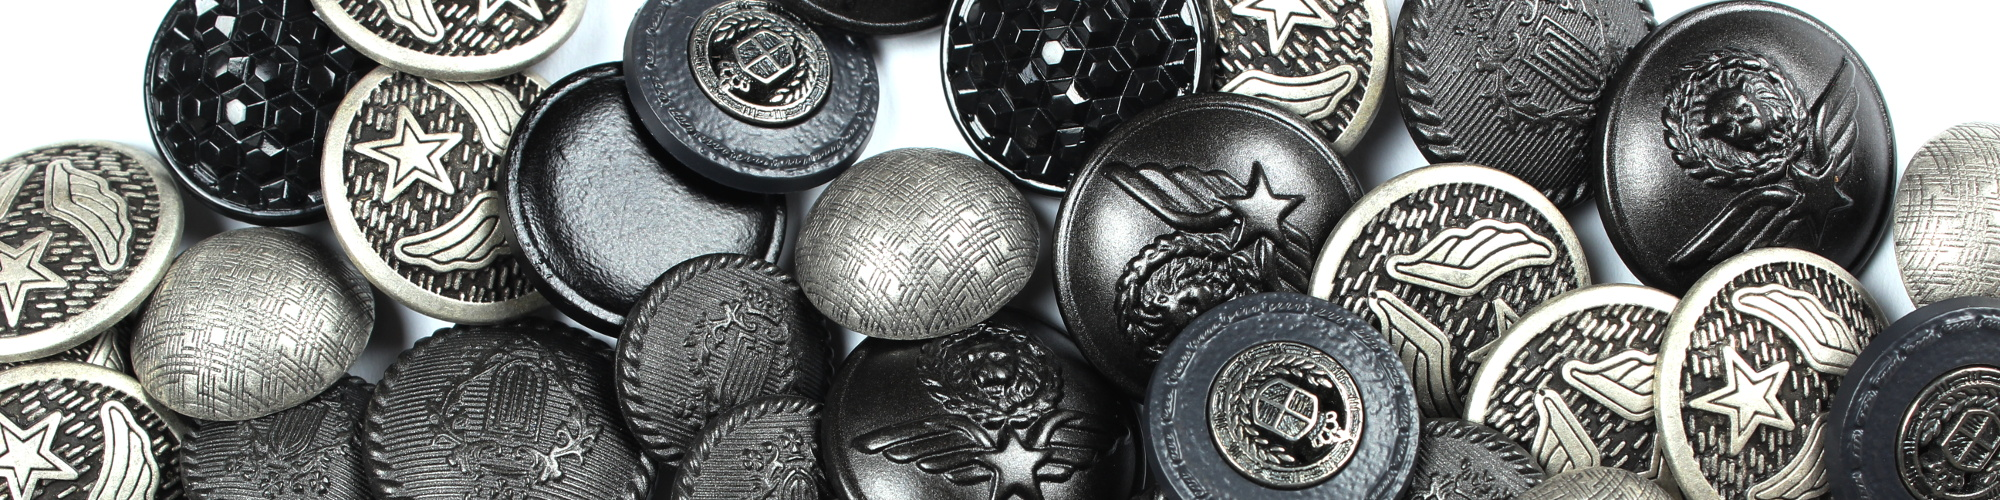 Silver and black buttons